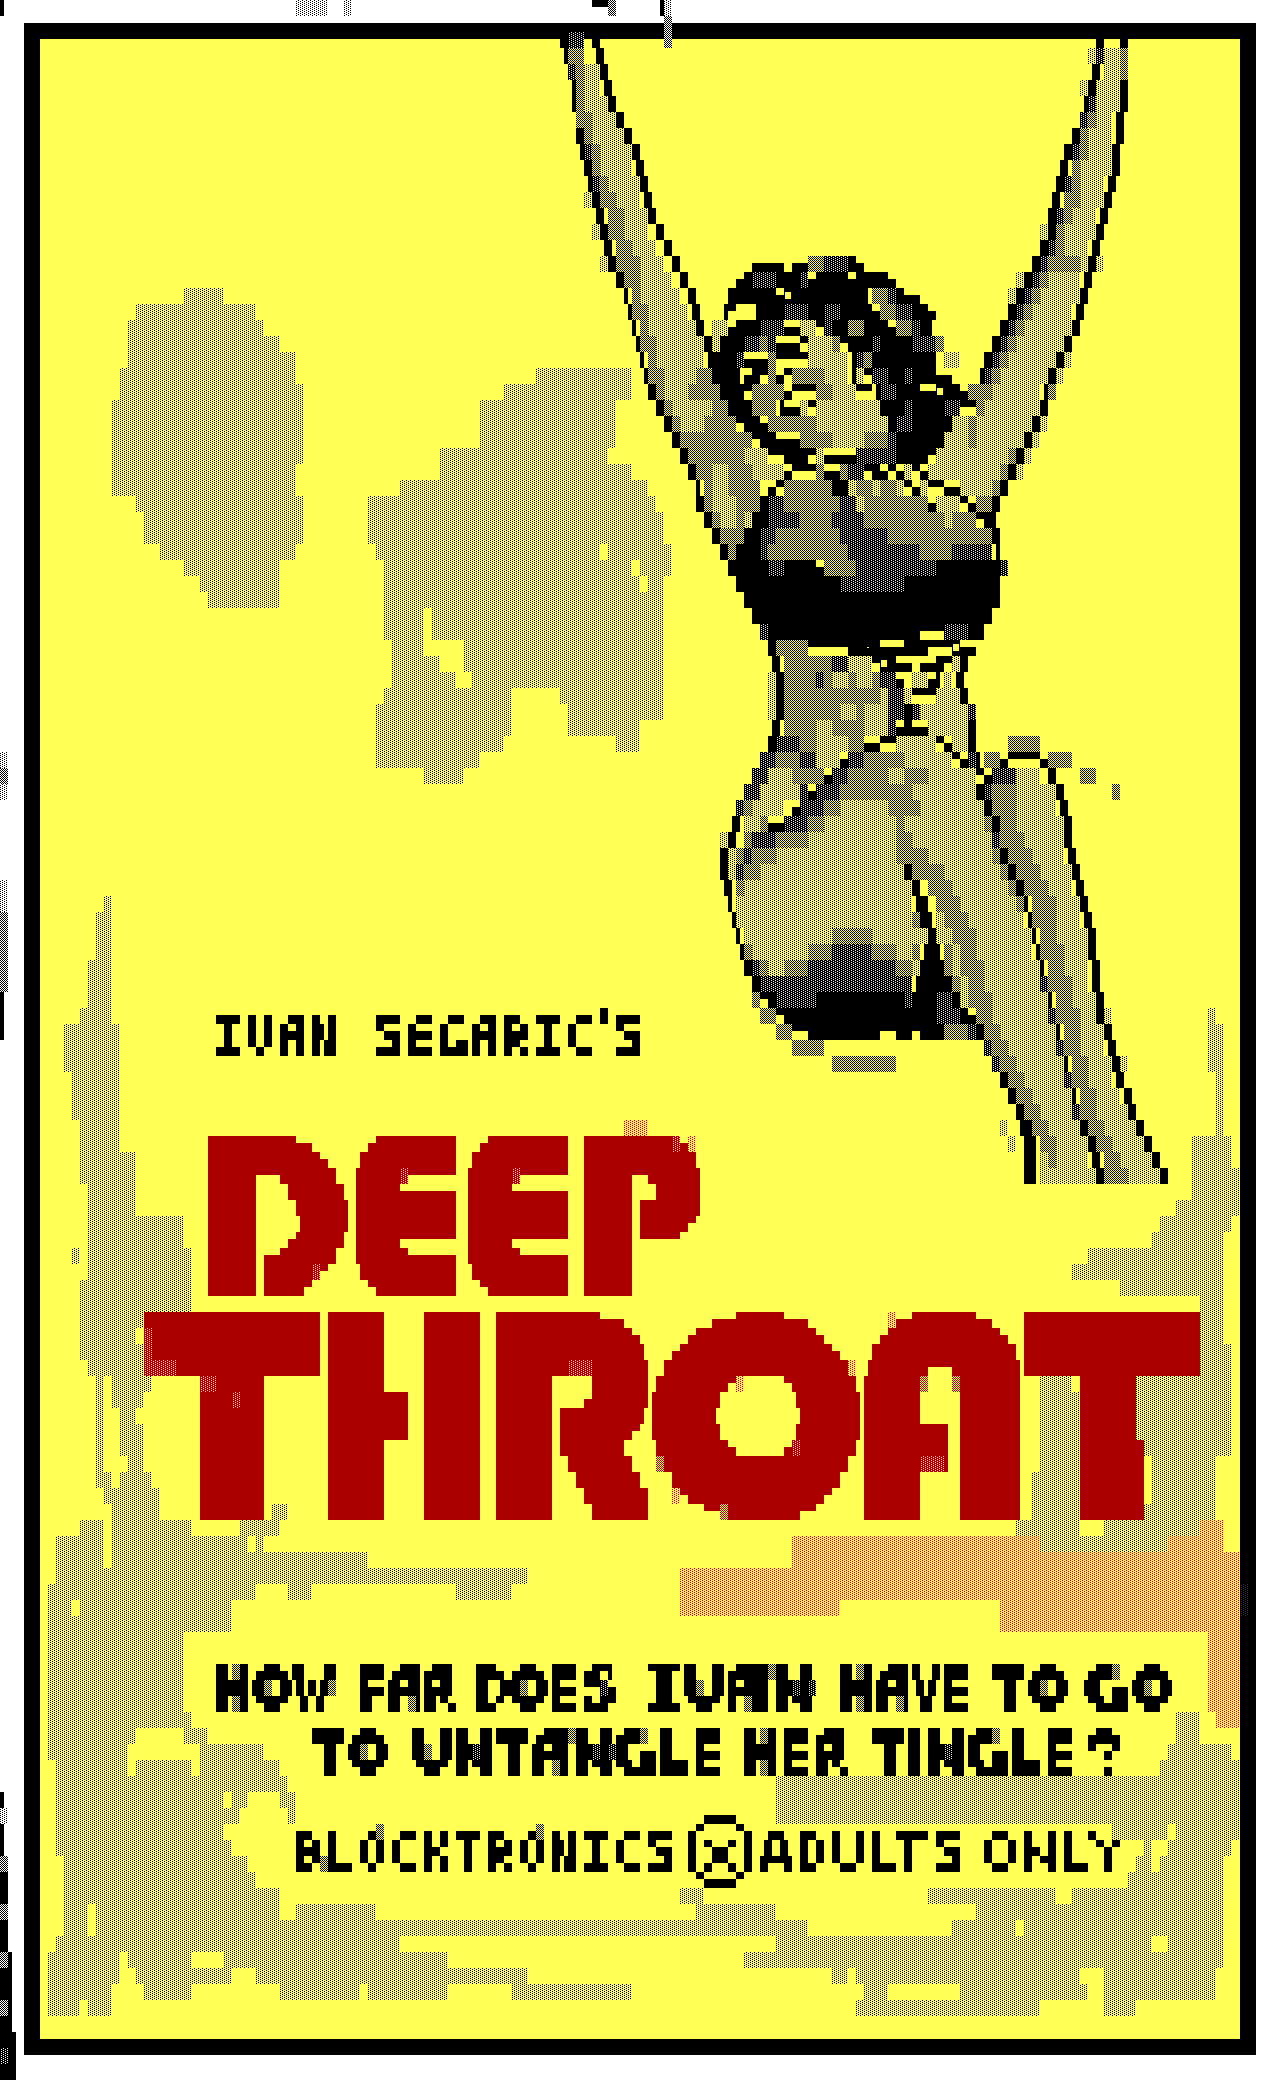 Deep Throat by TCF